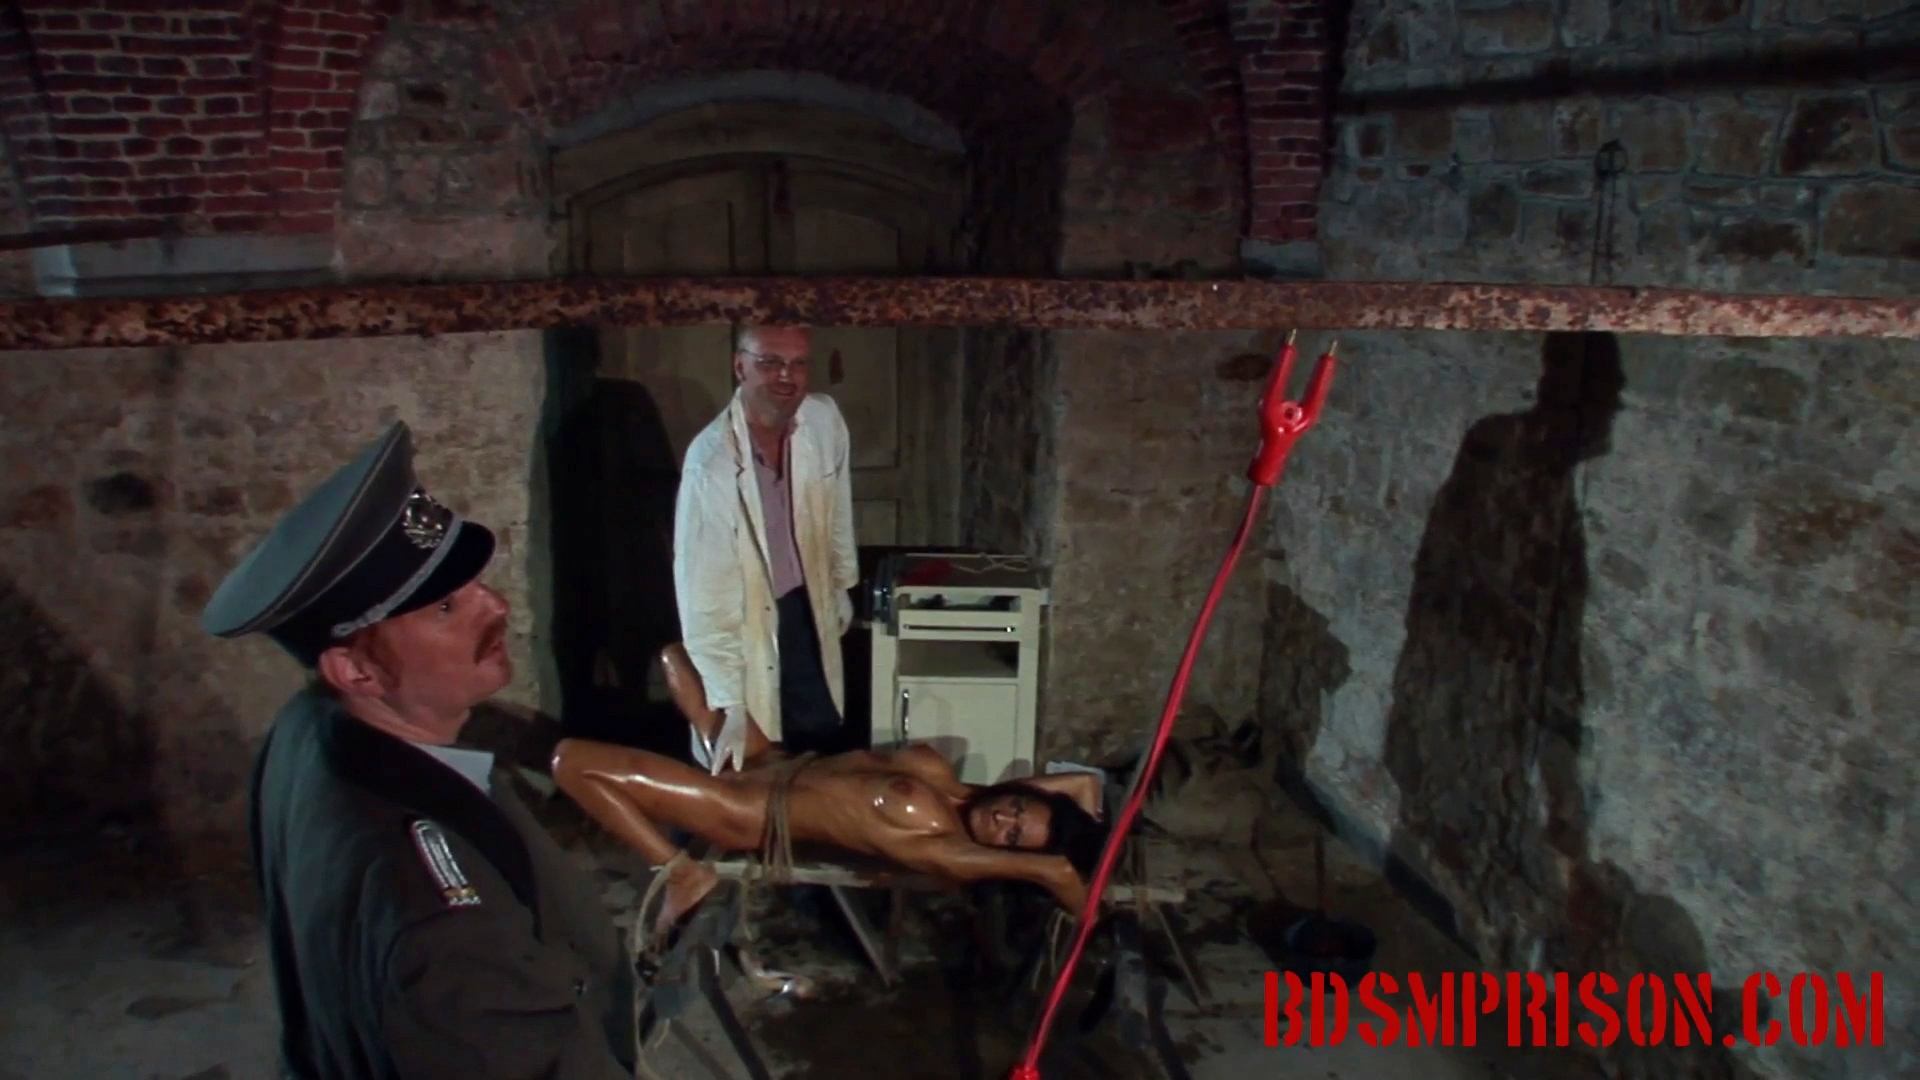 Natalia endures domination rope bondage medical play. Natalia was arrested for being an undercover agent and imprisoned. Her punishment will be harsh, worse than her interrogation. A prison guard and a mad doctor will take on the task of her sex slave training. She has to be washed first. They tie her down to a wood slab with rough rope.